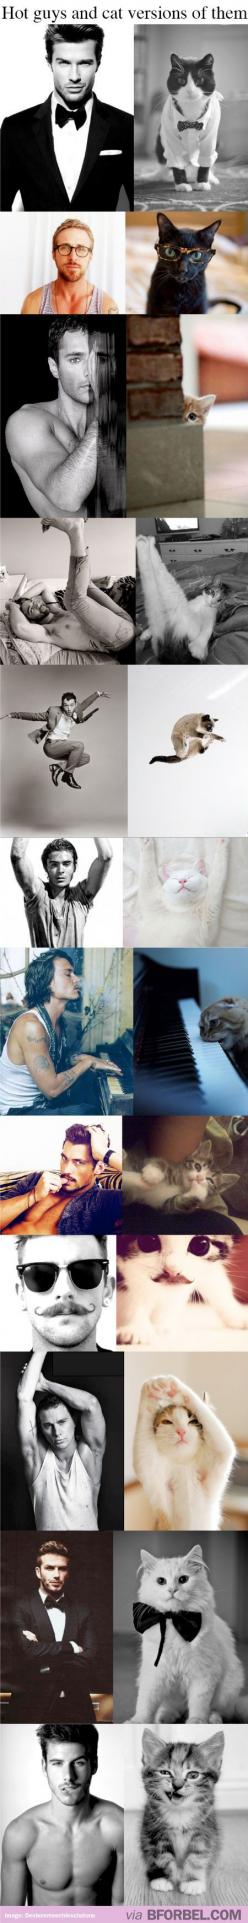 Hot guys and Cat versions of them! HOW CUTE IS THIS. Is its bad that I care more about the cats?: Giggle, Crazy Cat, So Funny, Hot Guys, Cats Win, Animal, Cat Versions, Cat Lady